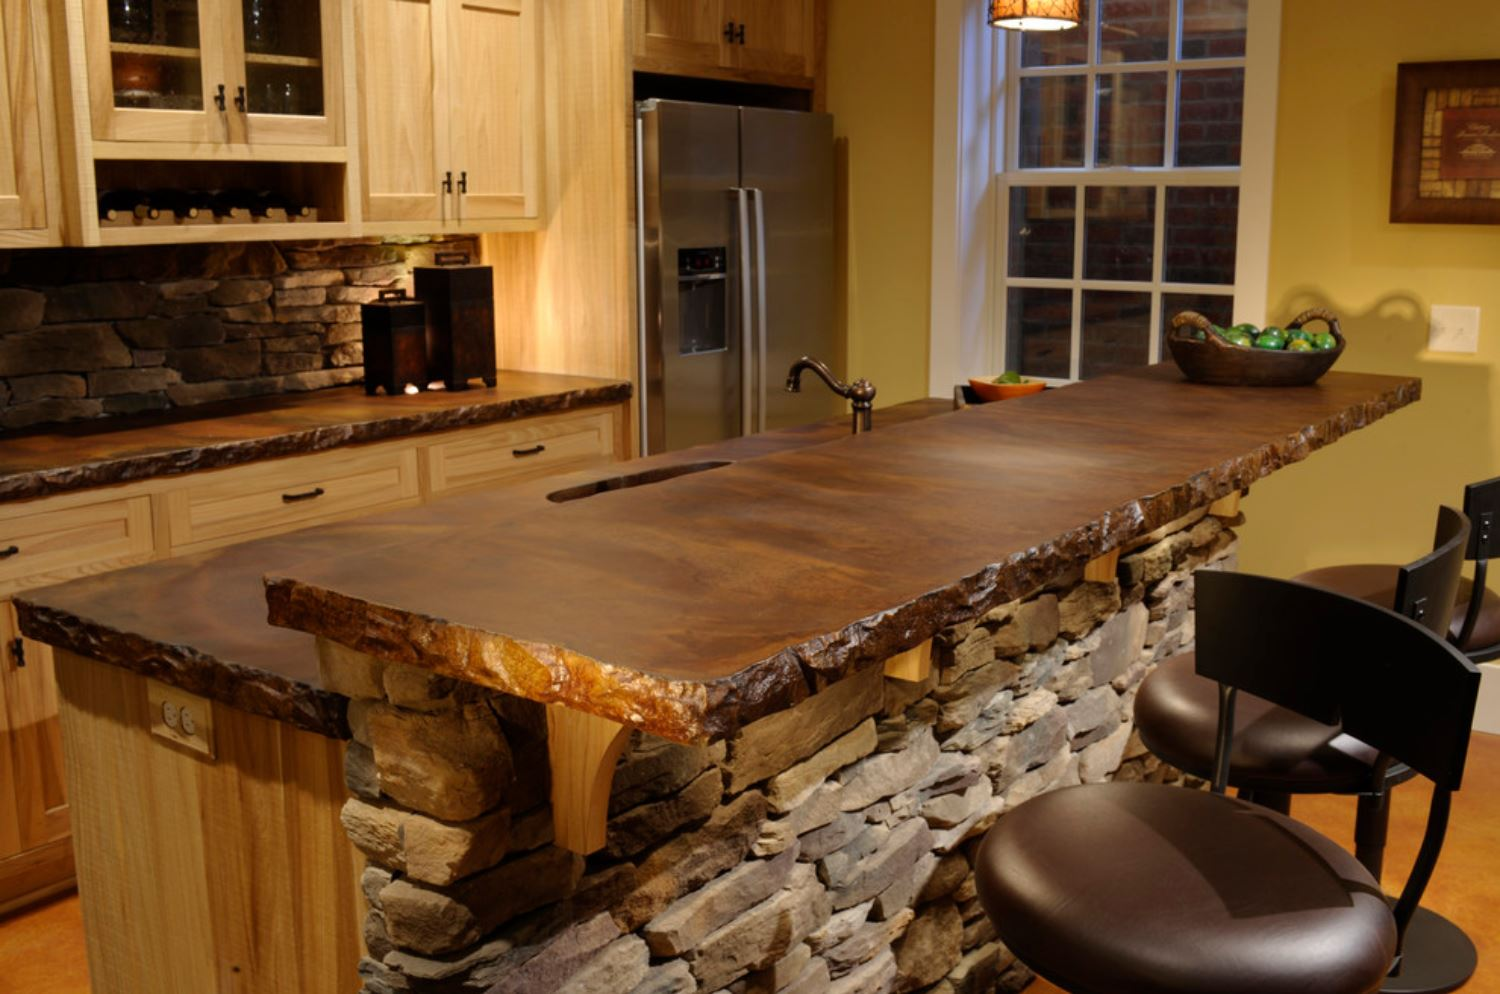 Granite Countertops Heat Damage Top 15 Kitchen Countertops Costs And Pros Cons 2019 Home